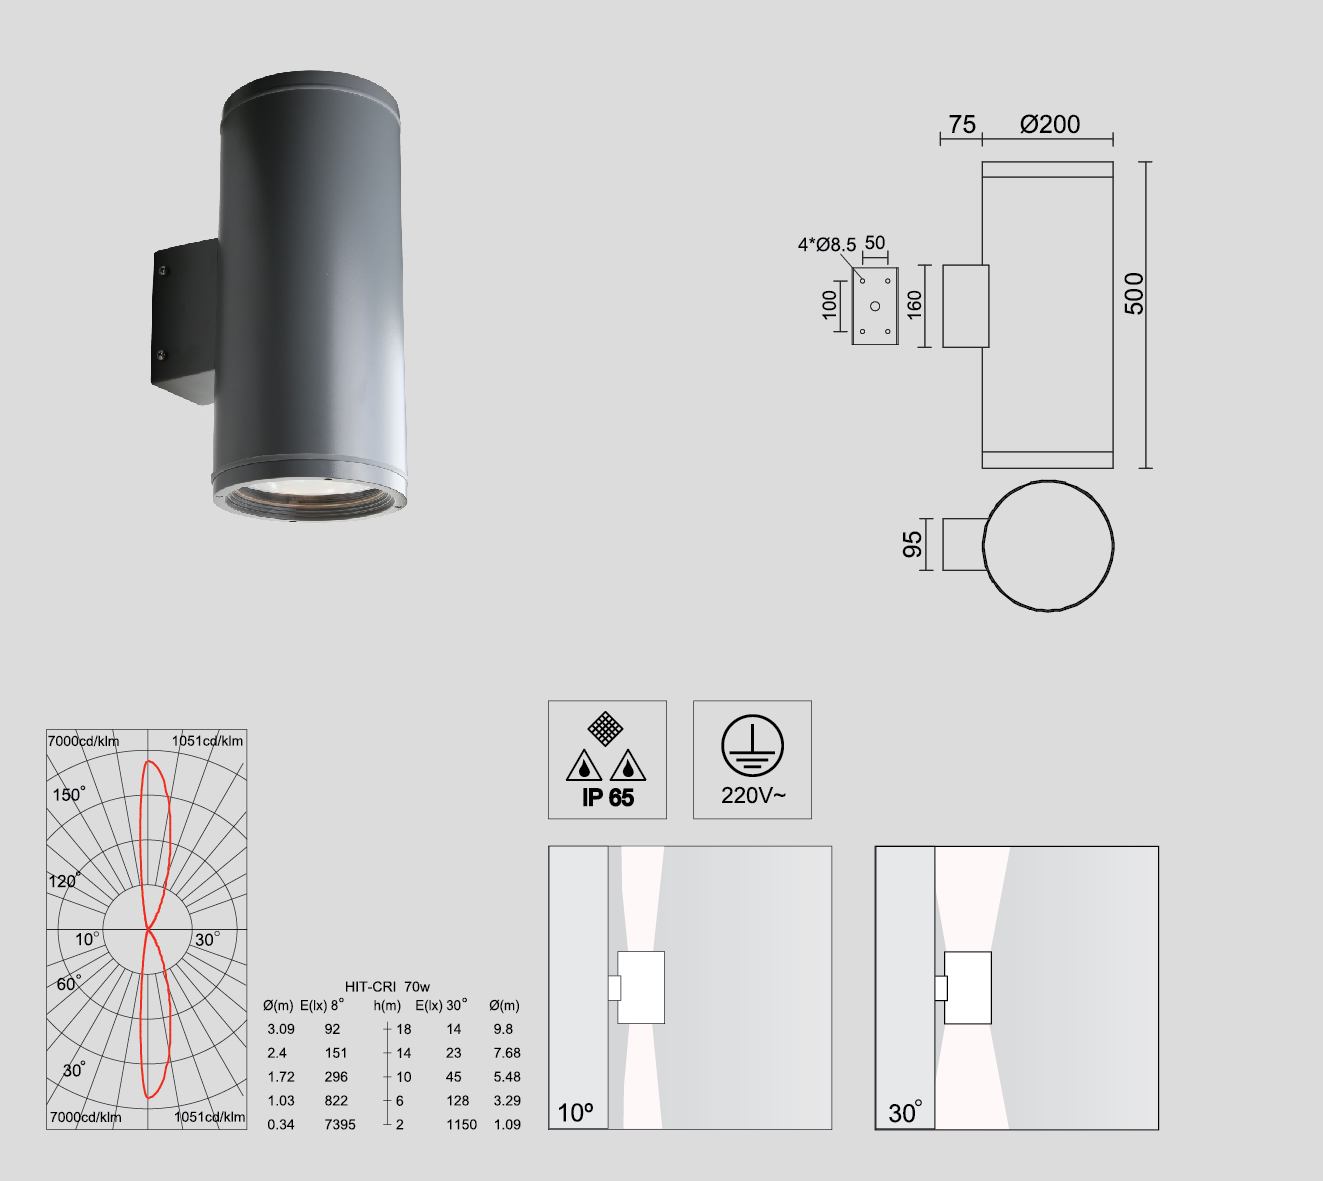 hight resolution of mh cylinder series as floodlight widely applied in architecture corridor bollard